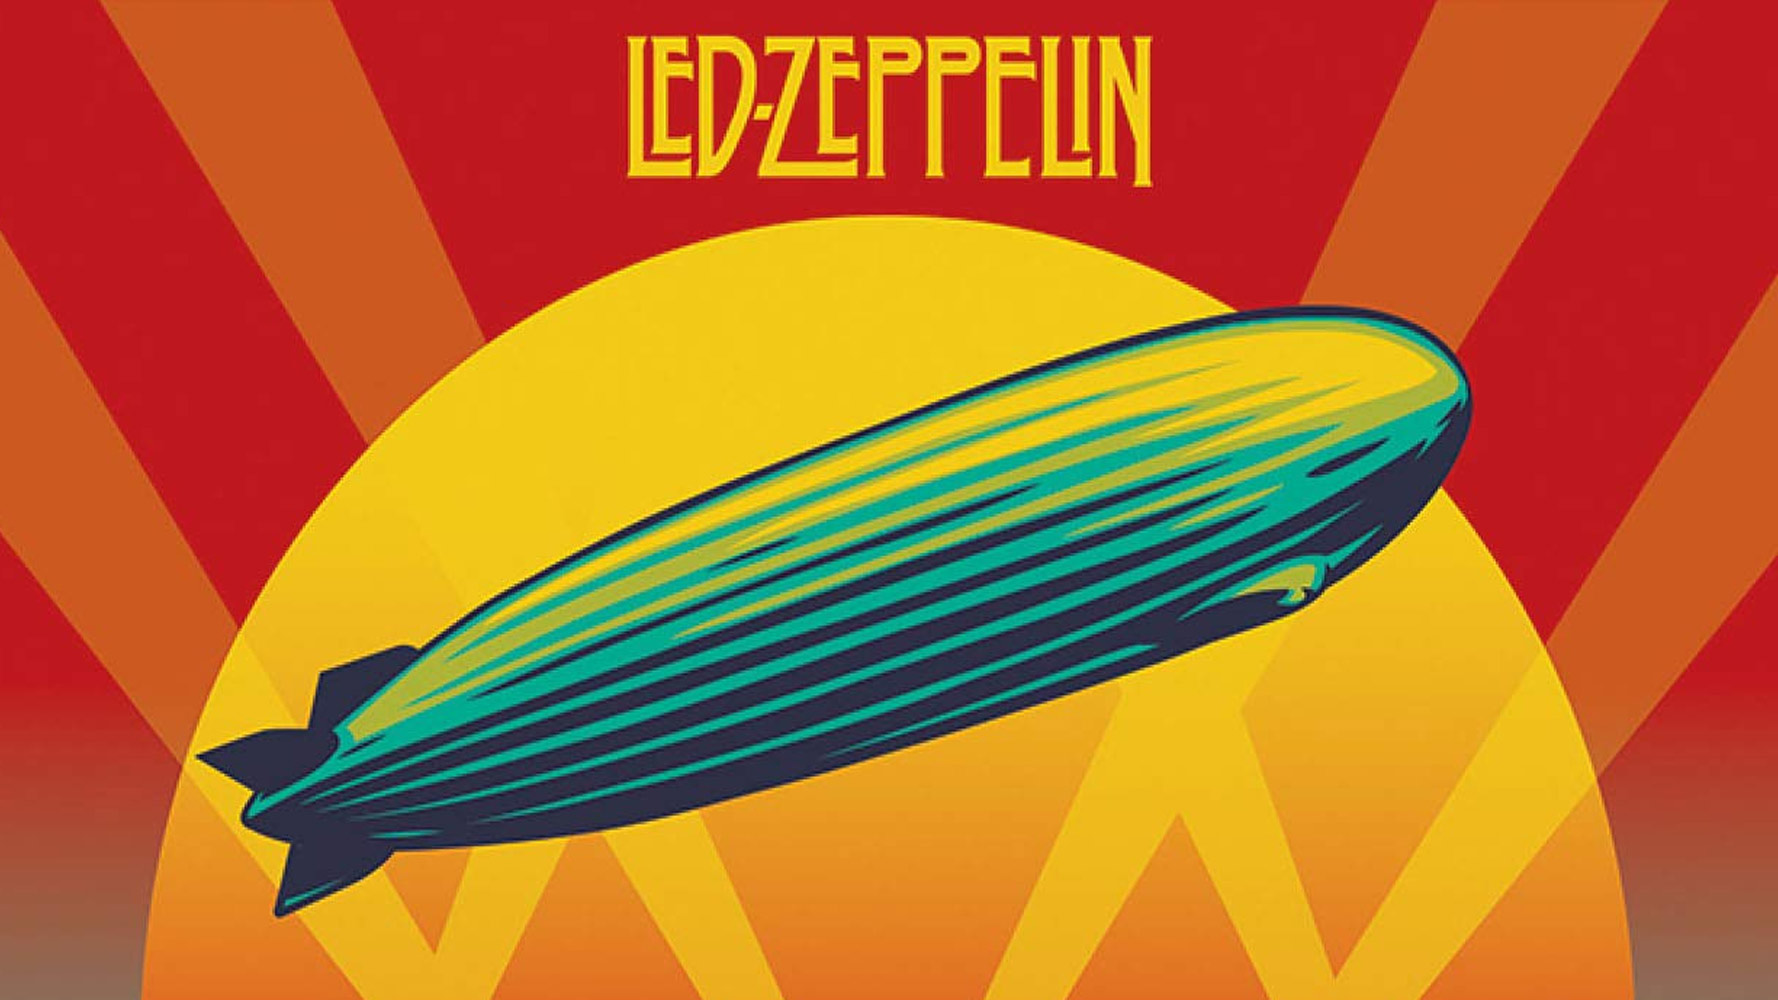 flipper-led-zeppelin